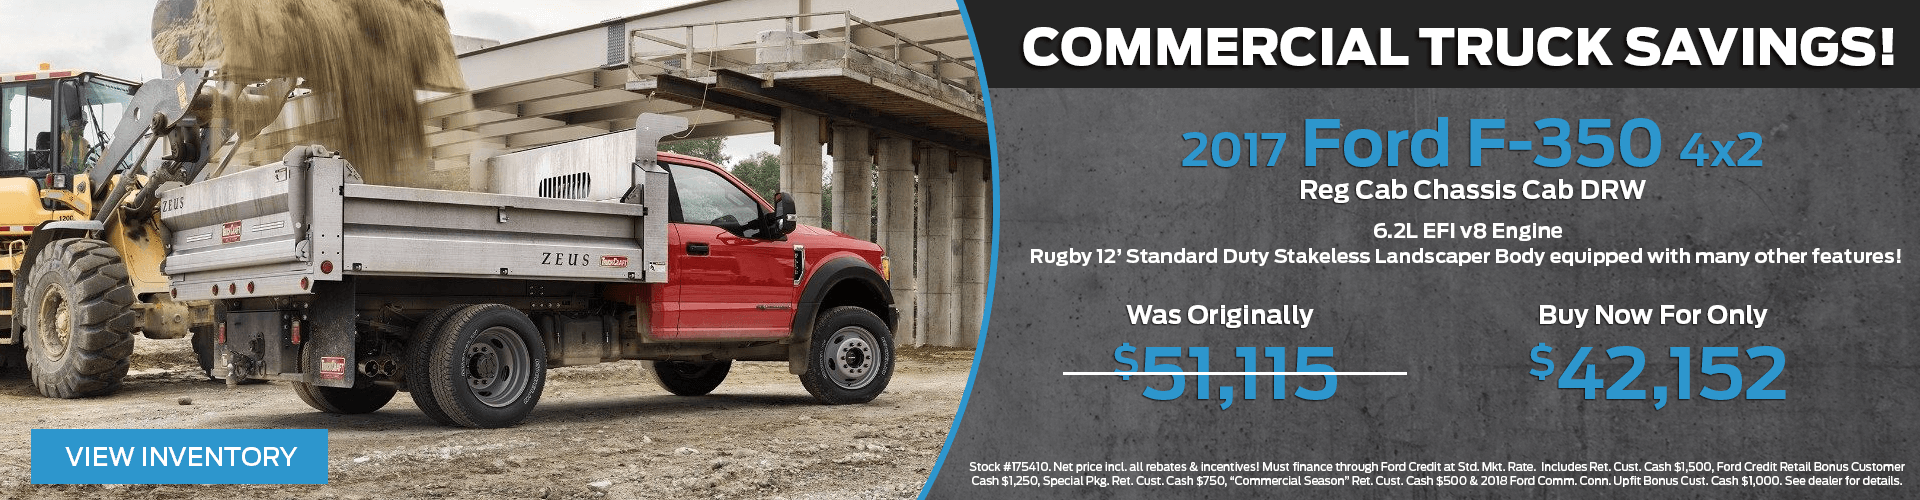 2017 Ford F-350 4x2